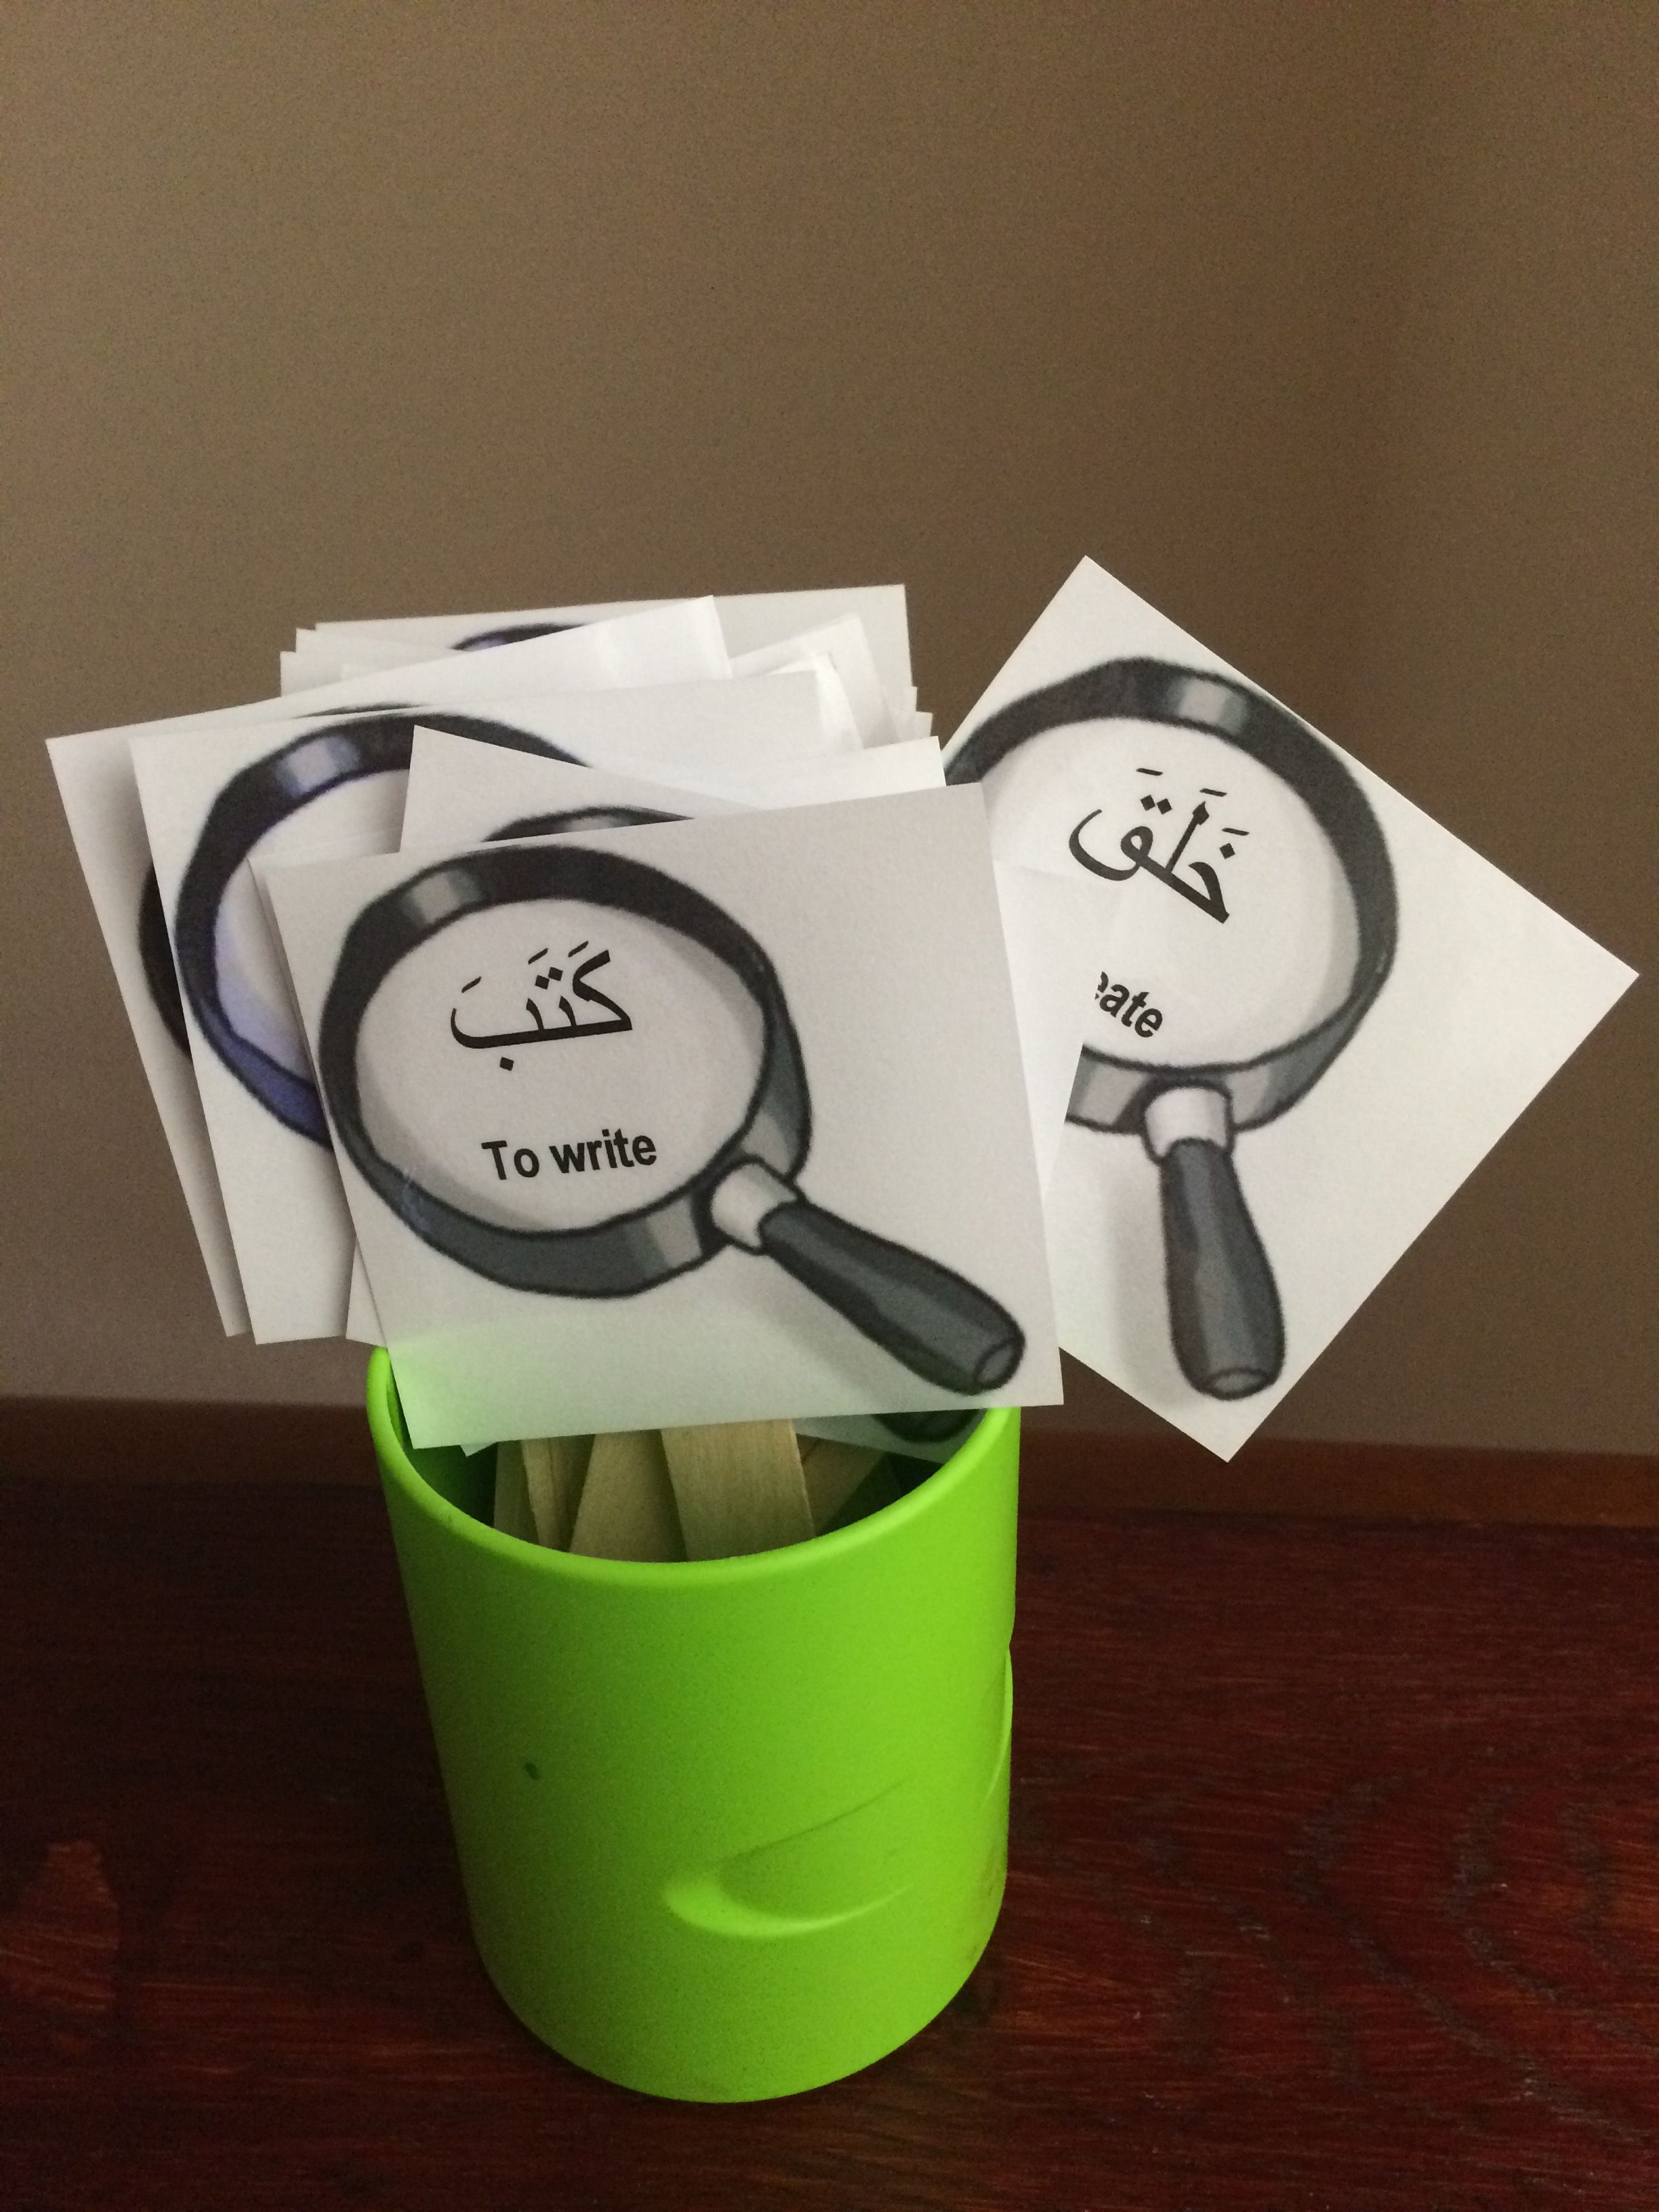 I Spy An Arabic Verb Game Free At